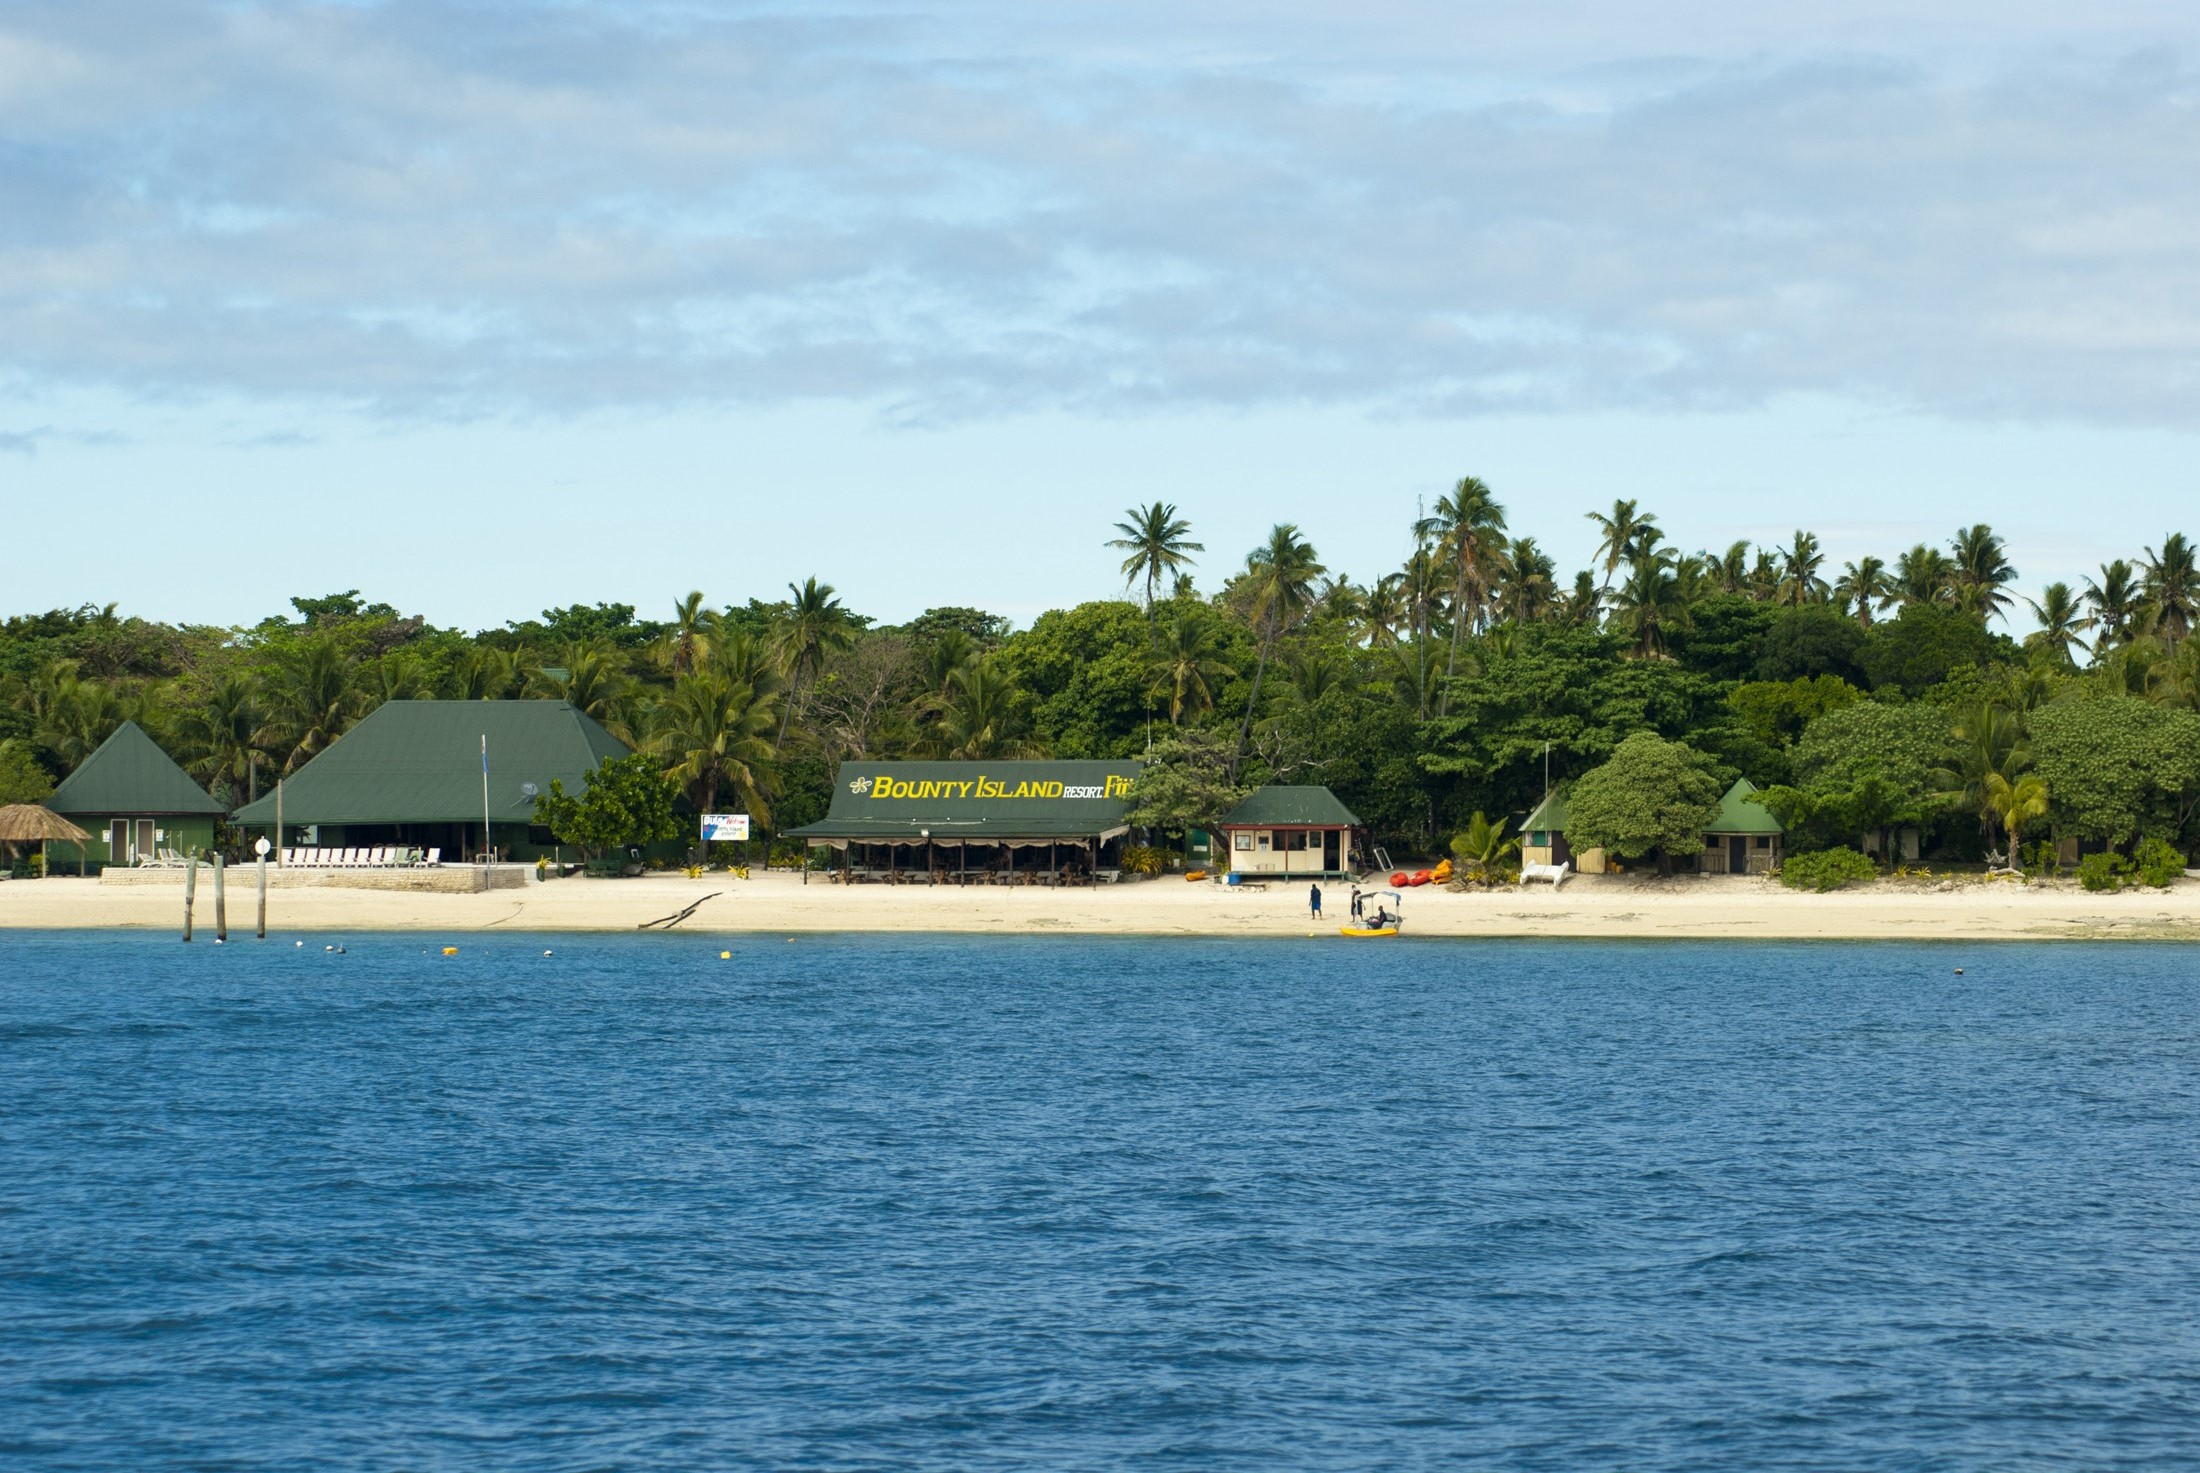 Bounty Island resort, Fiji, on an idyllic tropical island with tourist visible on the sandy beach in front of the buildings